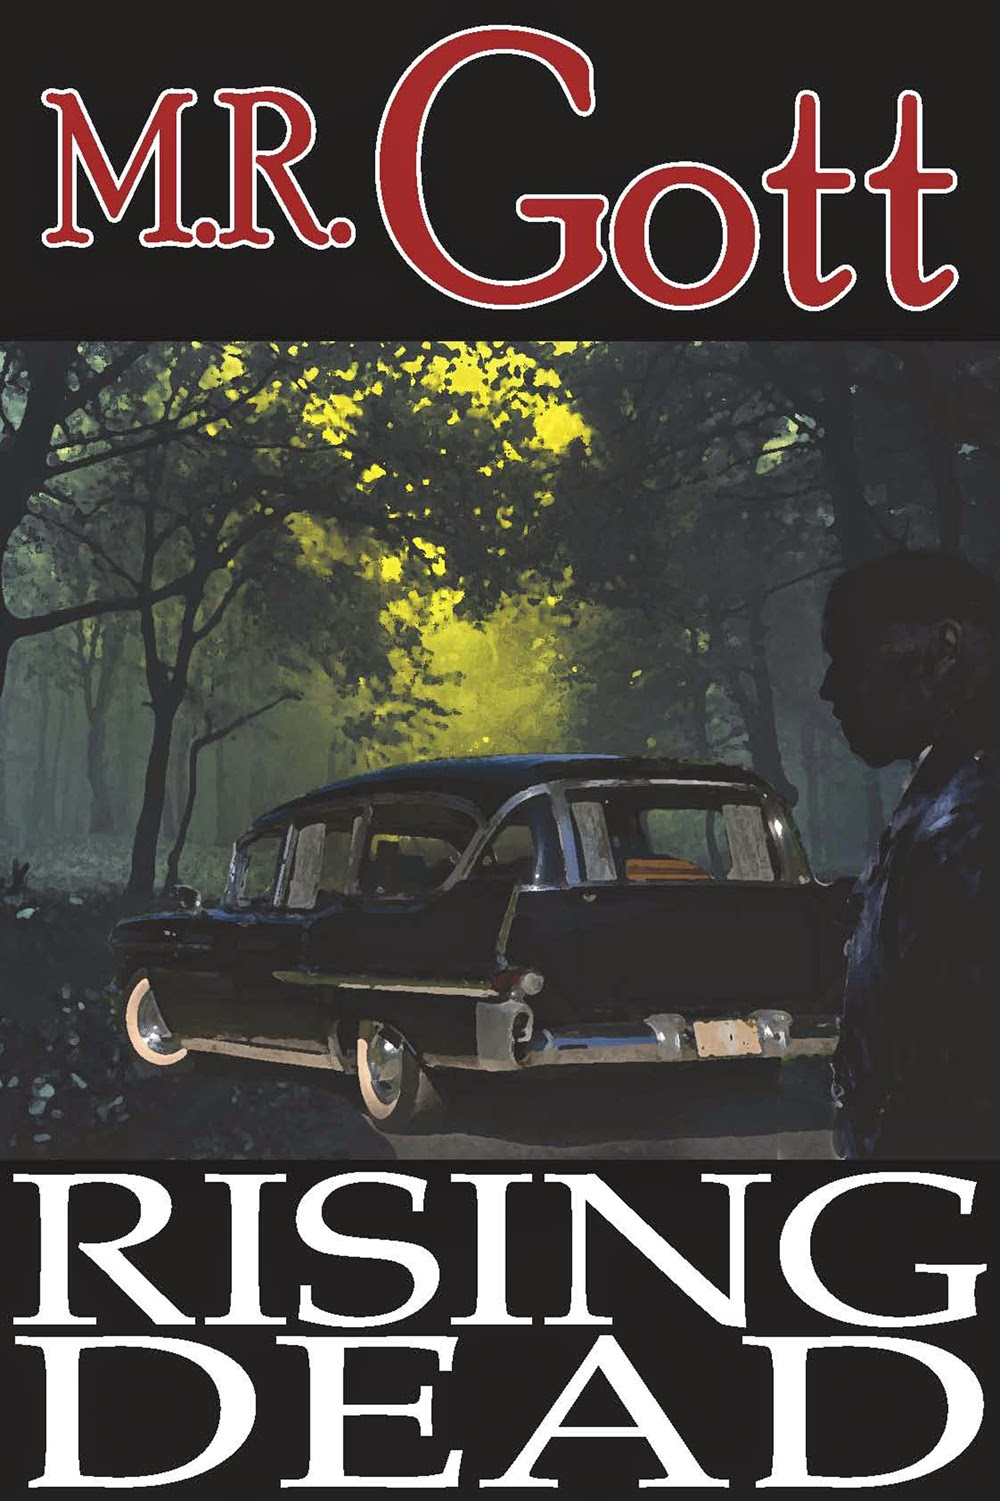 http://www.amazon.com/Rising-Dead-M-R-Gott-ebook/dp/B00PE72OM6/ref=sr_1_3?s=books&ie=UTF8&qid=1415549548&sr=1-3&keywords=m.r.+gott